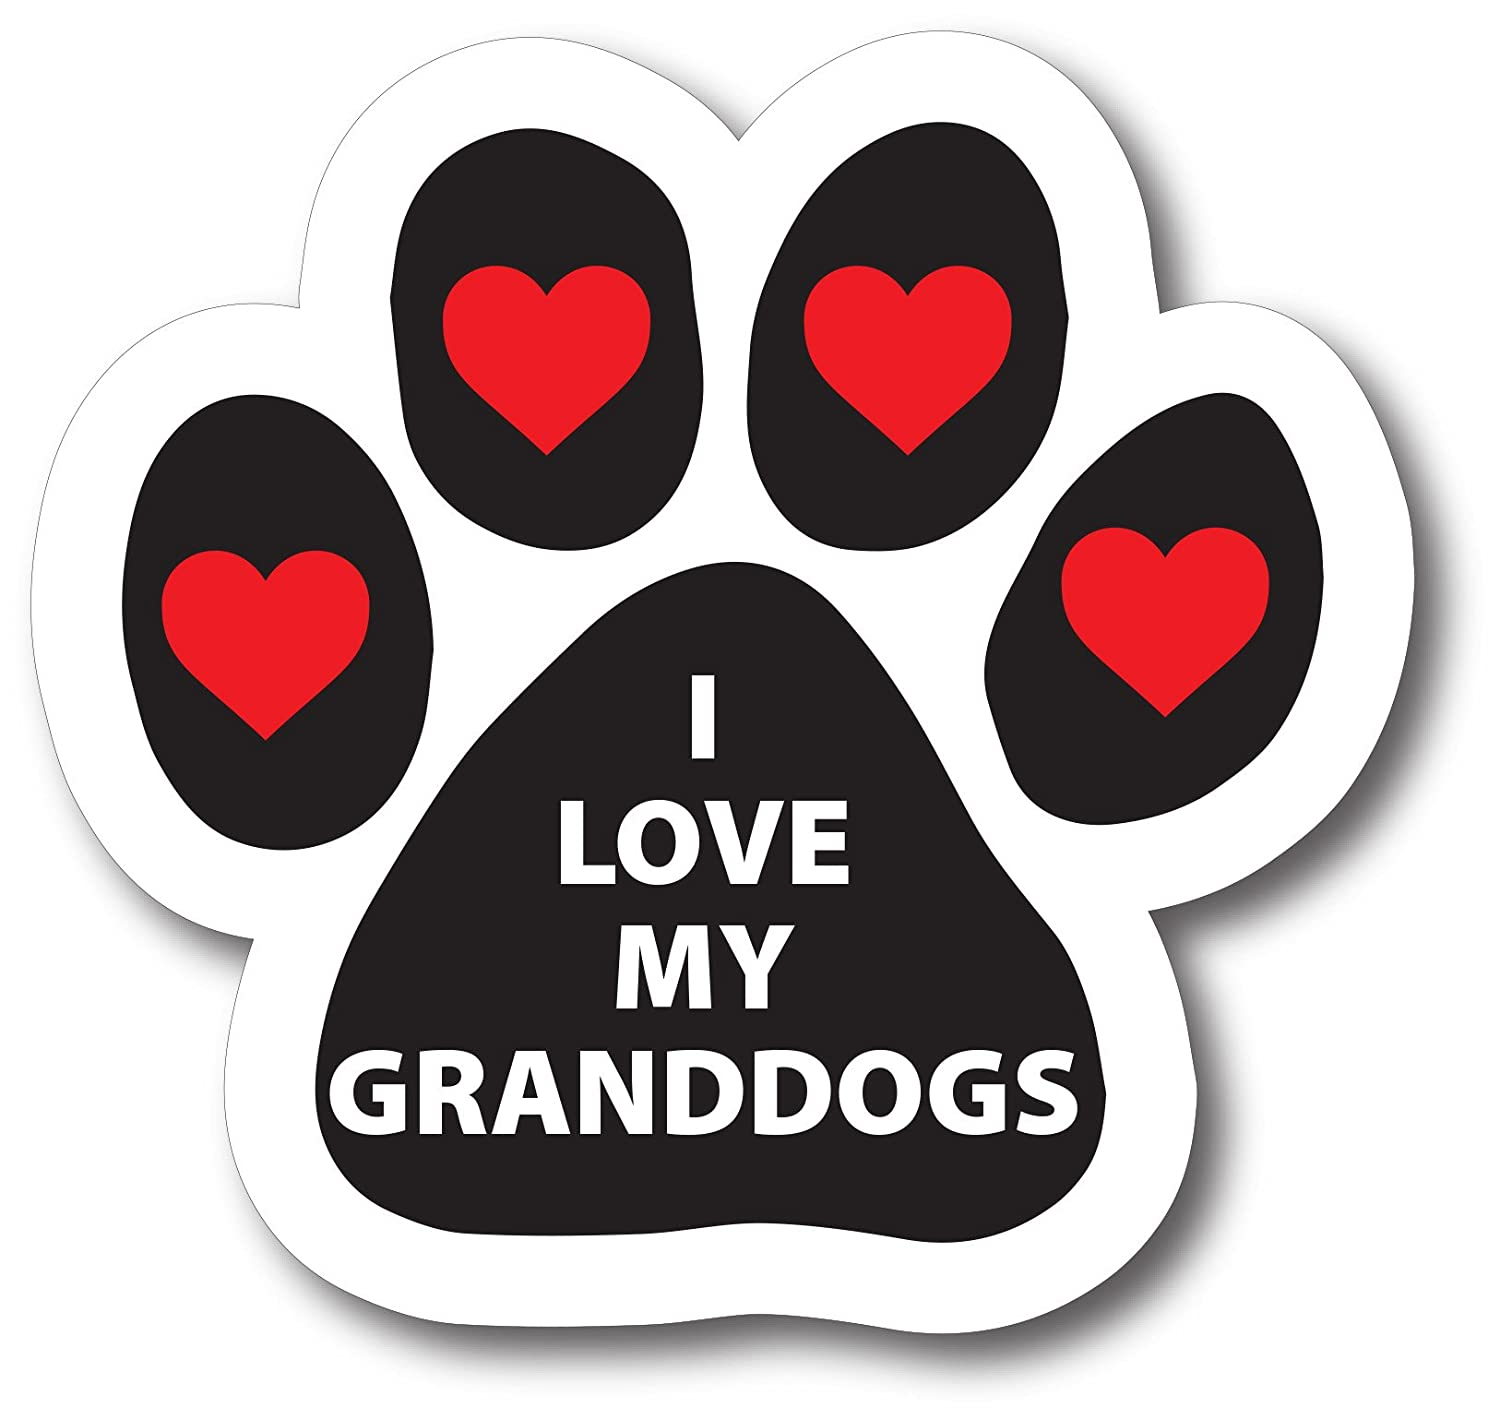 I Love My Granddogs Paw Print Car Magnet Heavy Duty Wateproof